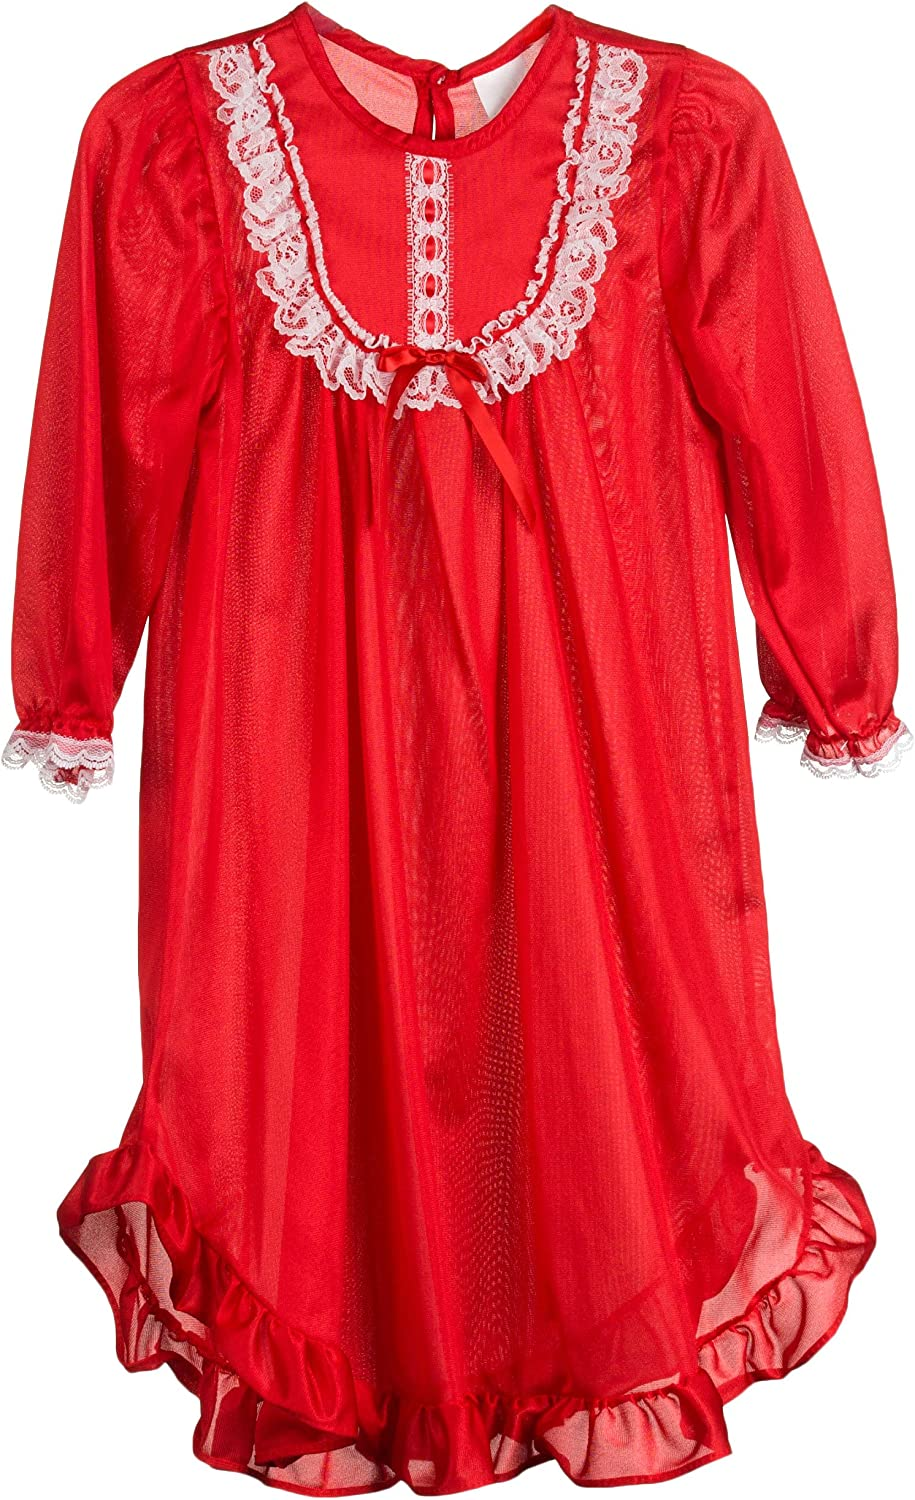 Laura Dare Big Girls Long Sleeve Traditional Nightgown, 8-14